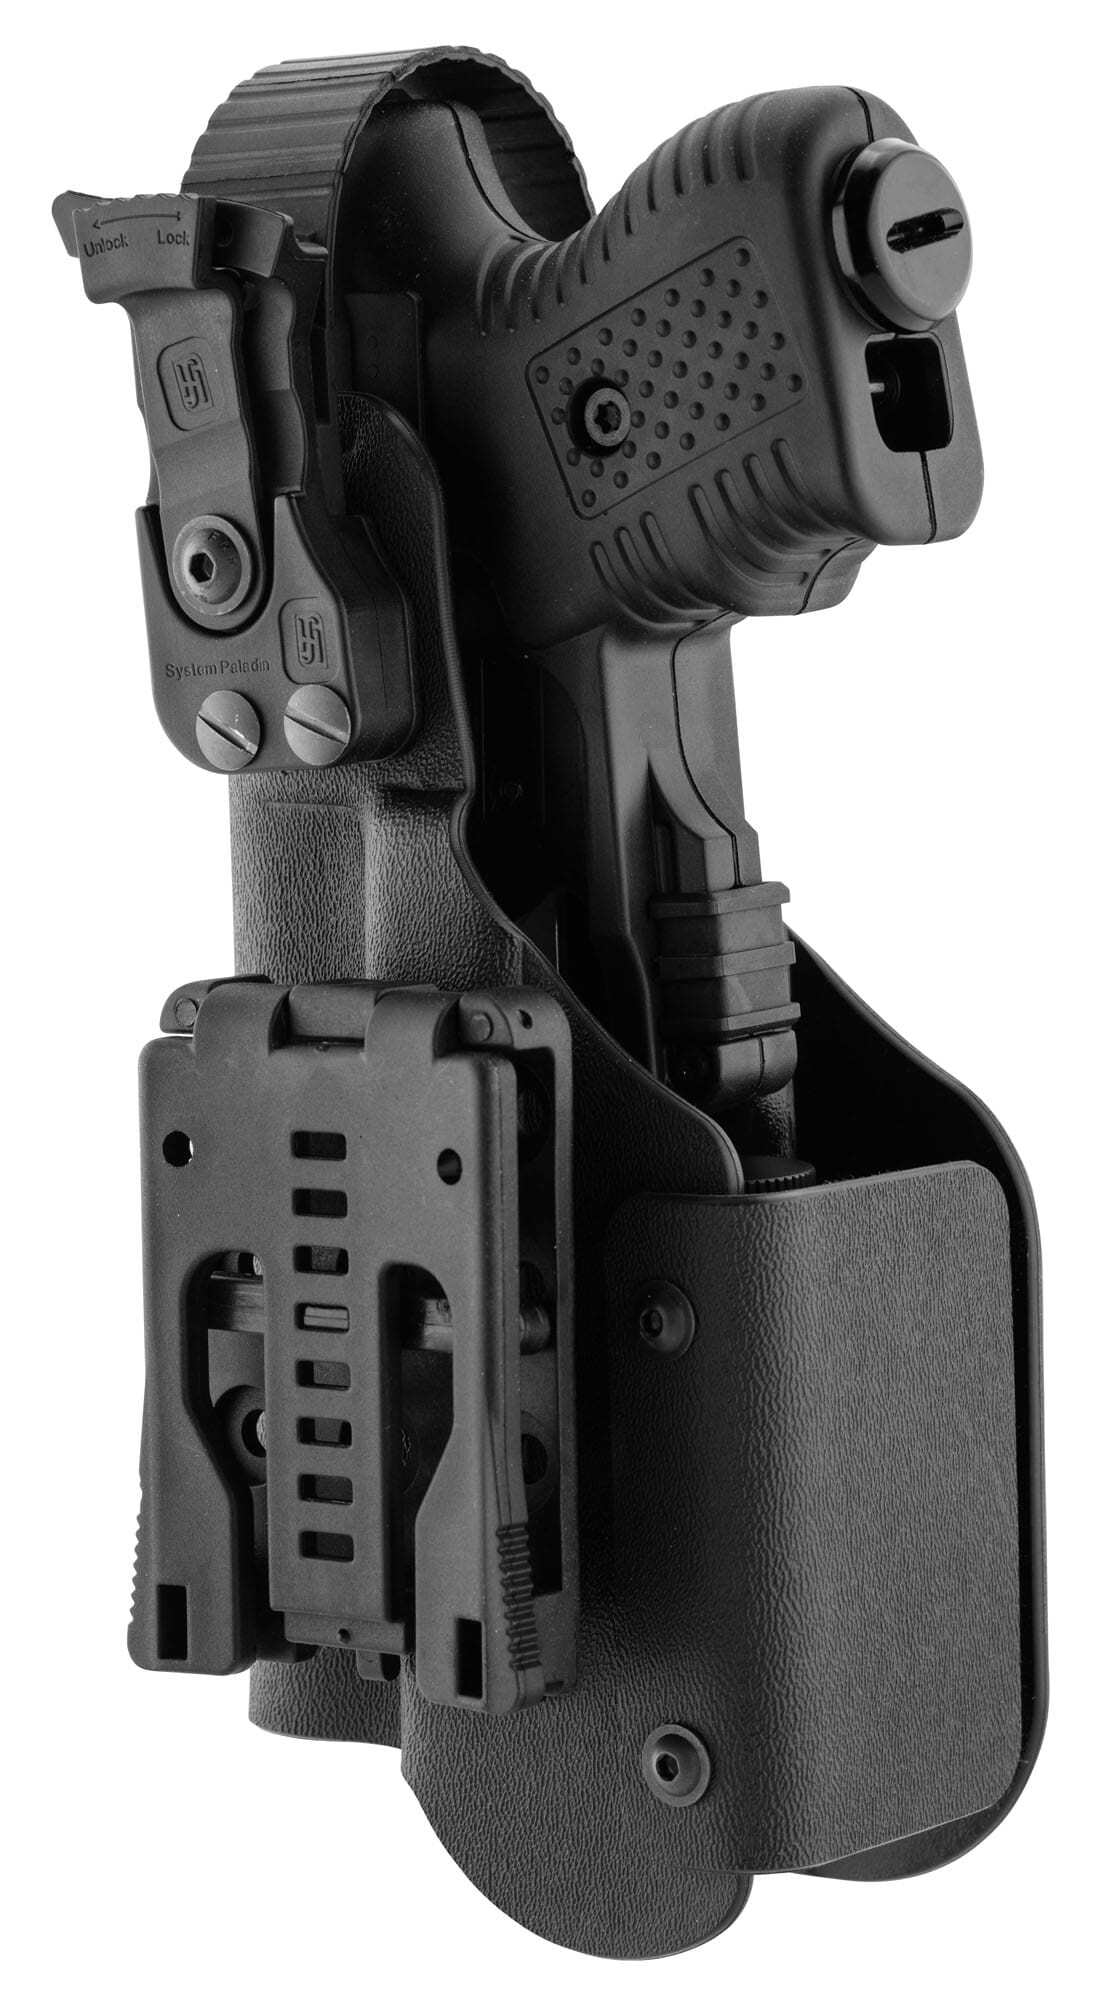 JPX390-2-Holster pour JPX - Kydex Paladin II avec lampe tactique - JPX390